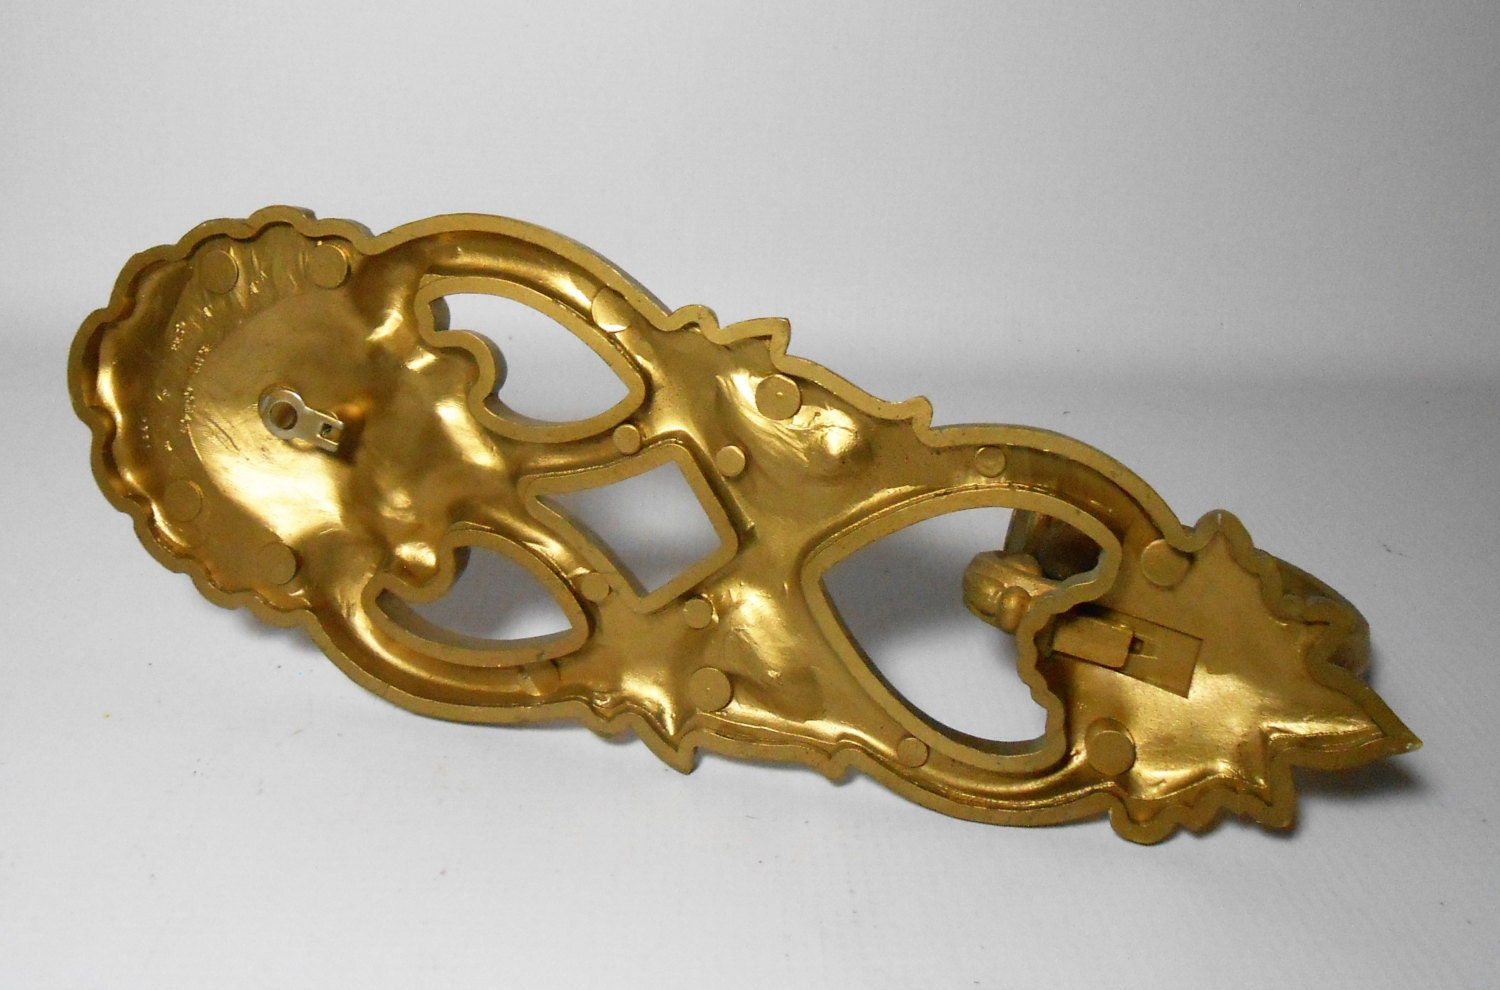 Vintage Candle Holders, Sconces, Gold, Ornate, Wall Sconce, Homco ...